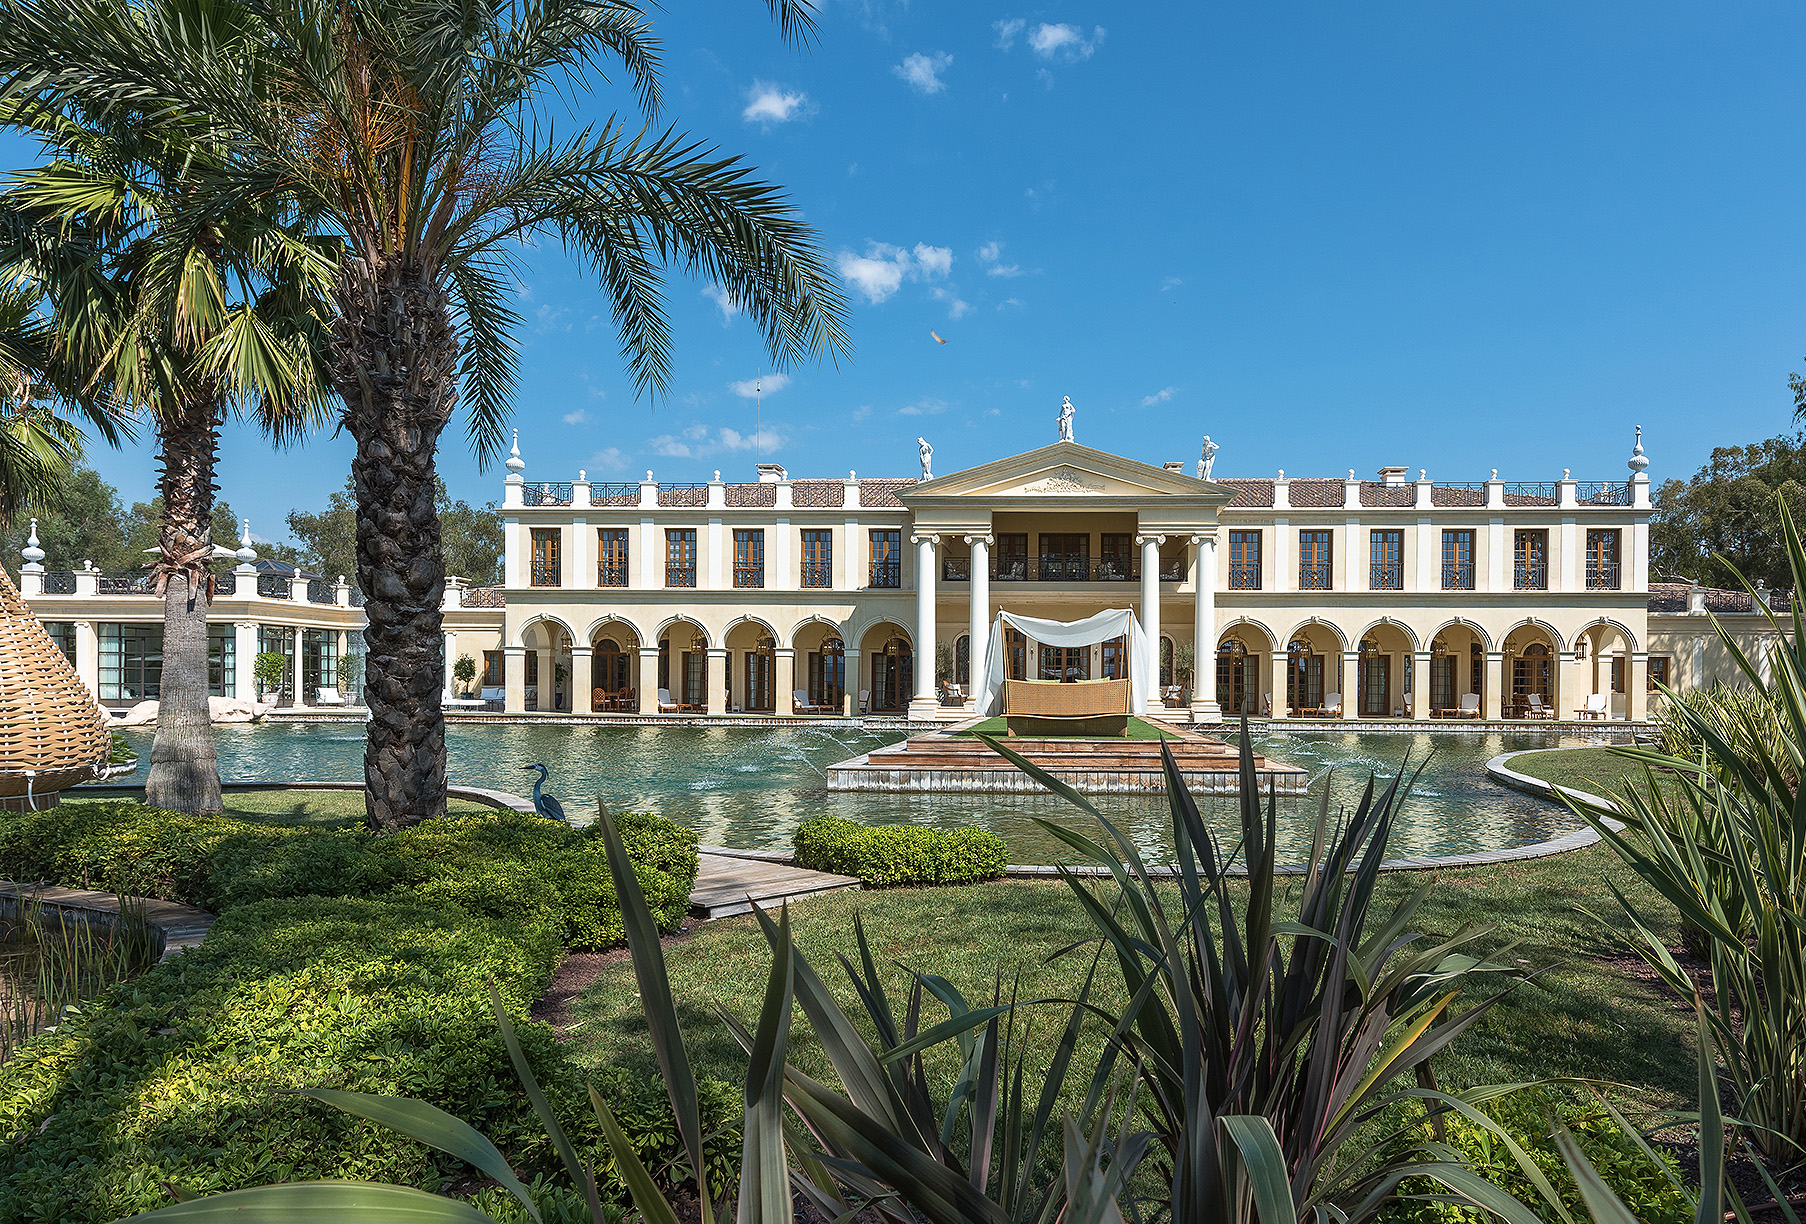 Palais Vénitien, residential palace in Cannes, France | The Finest Newsletter | FINEST RESIDENCES